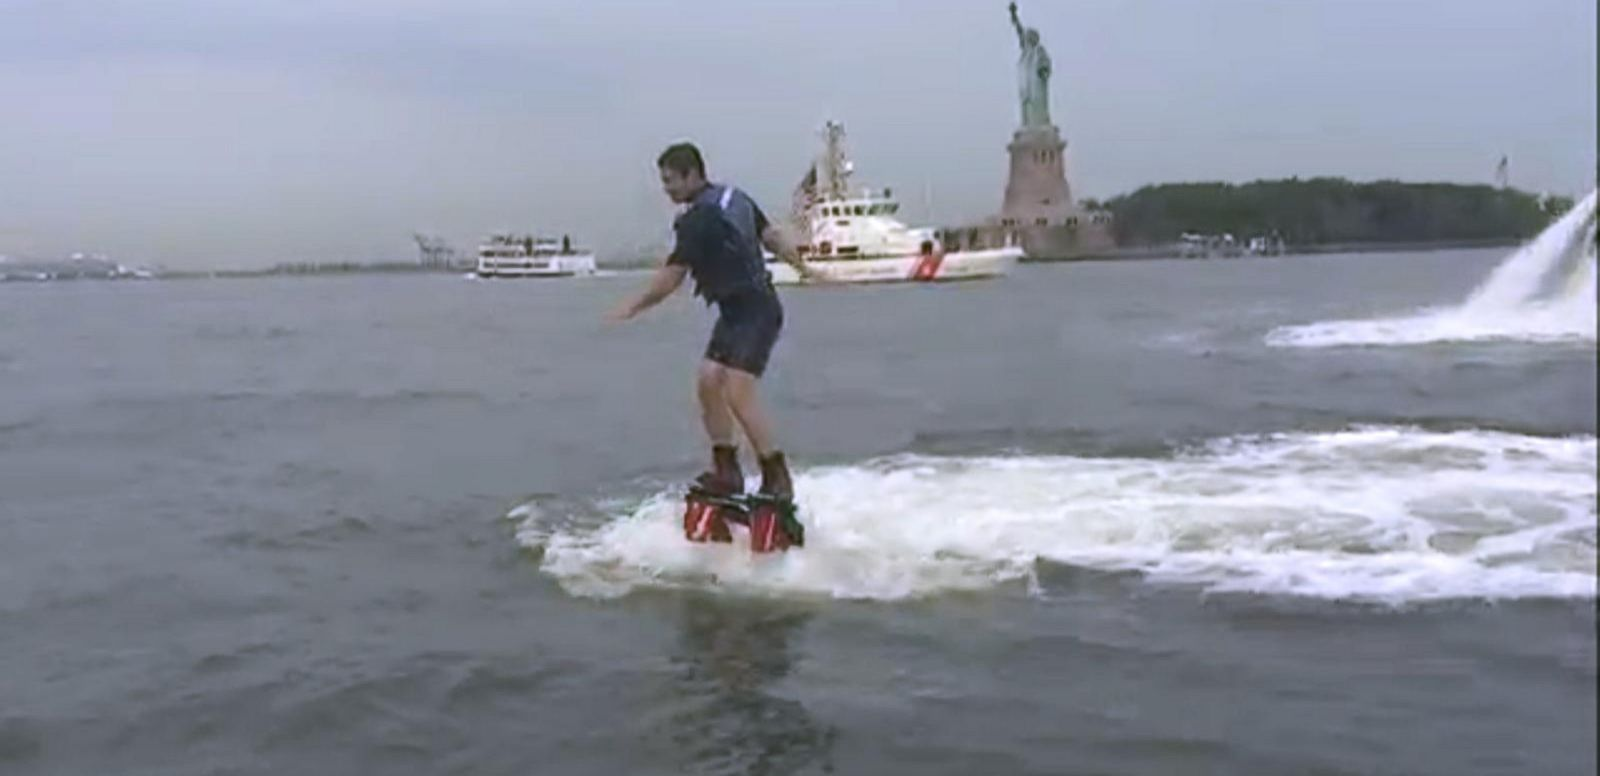 VIDEO: The Flyboard: An Extreme Way to Cool Down This Summer